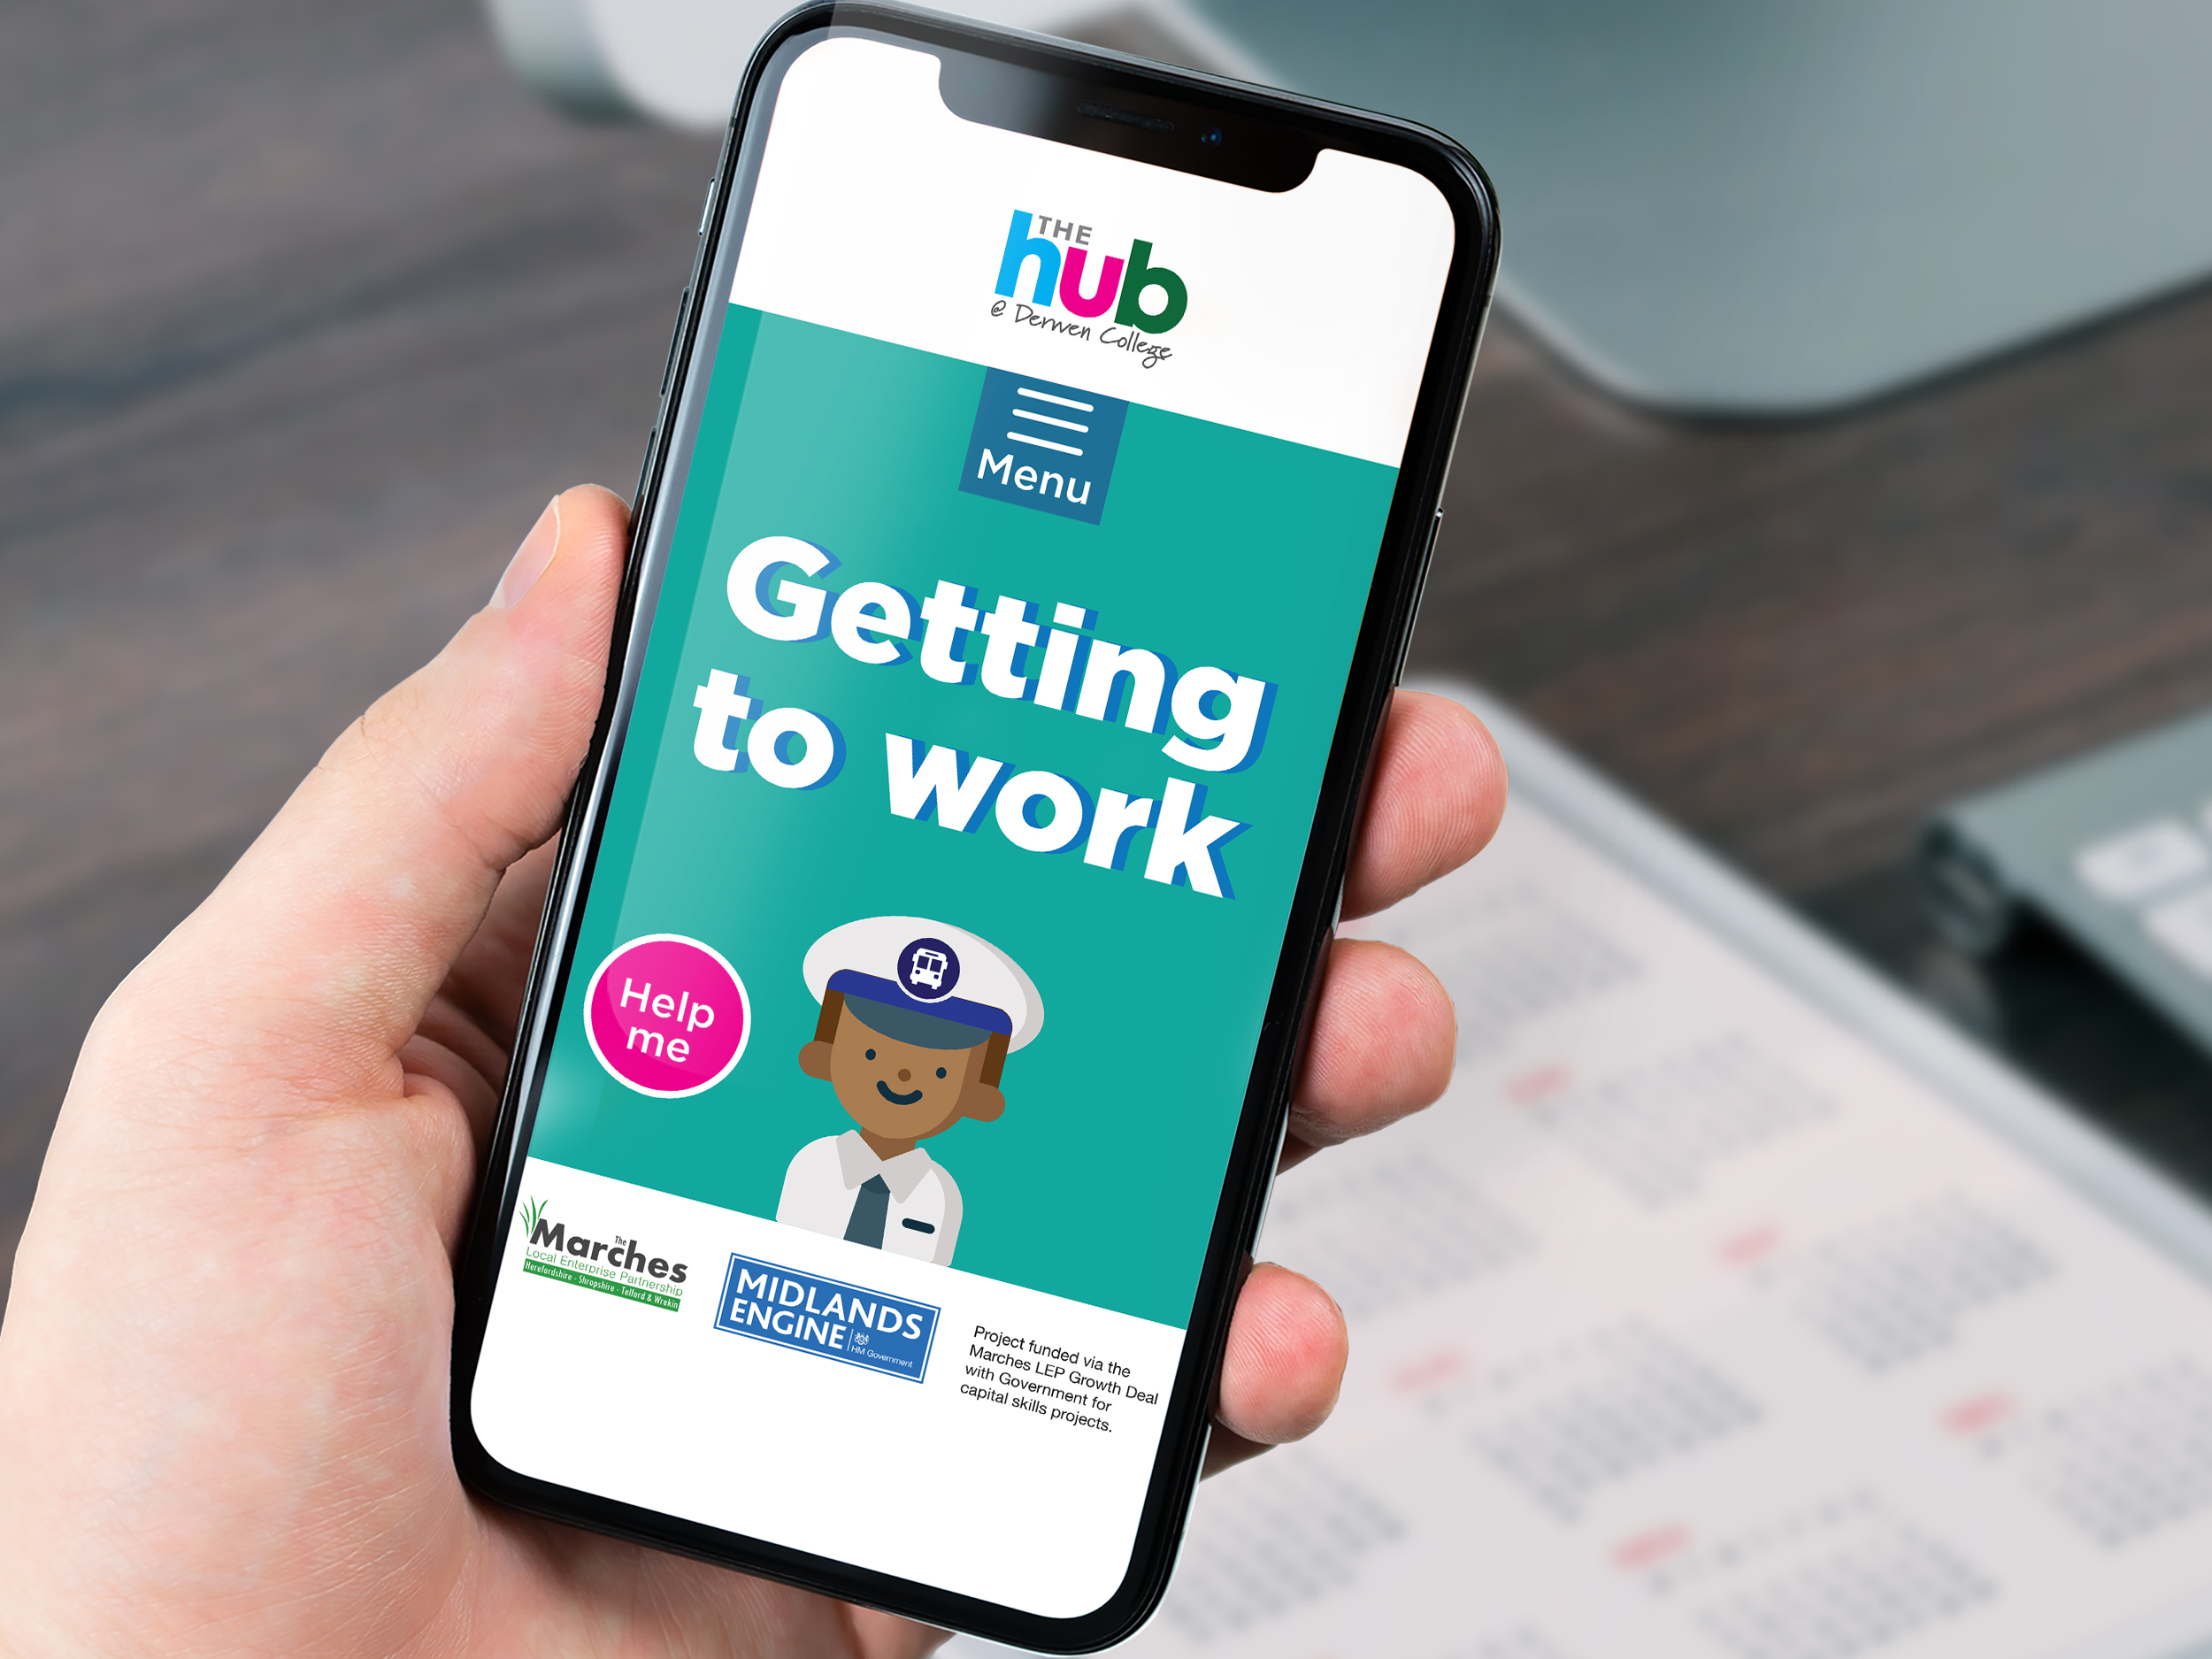 Getting to work App